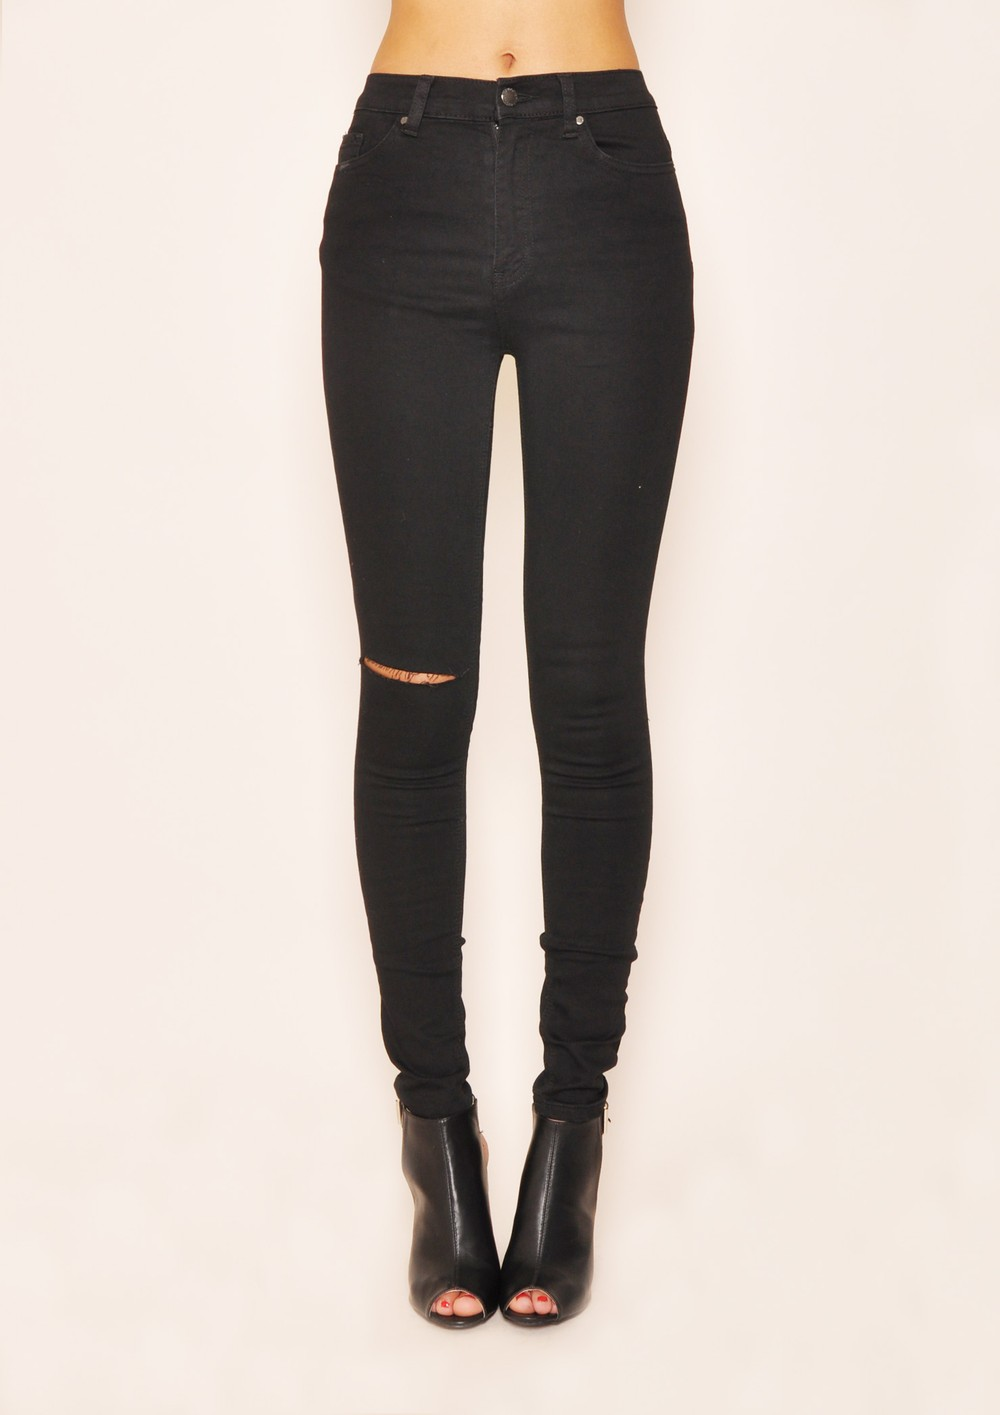 Black High Waisted Ripped Jeans - MX Jeans